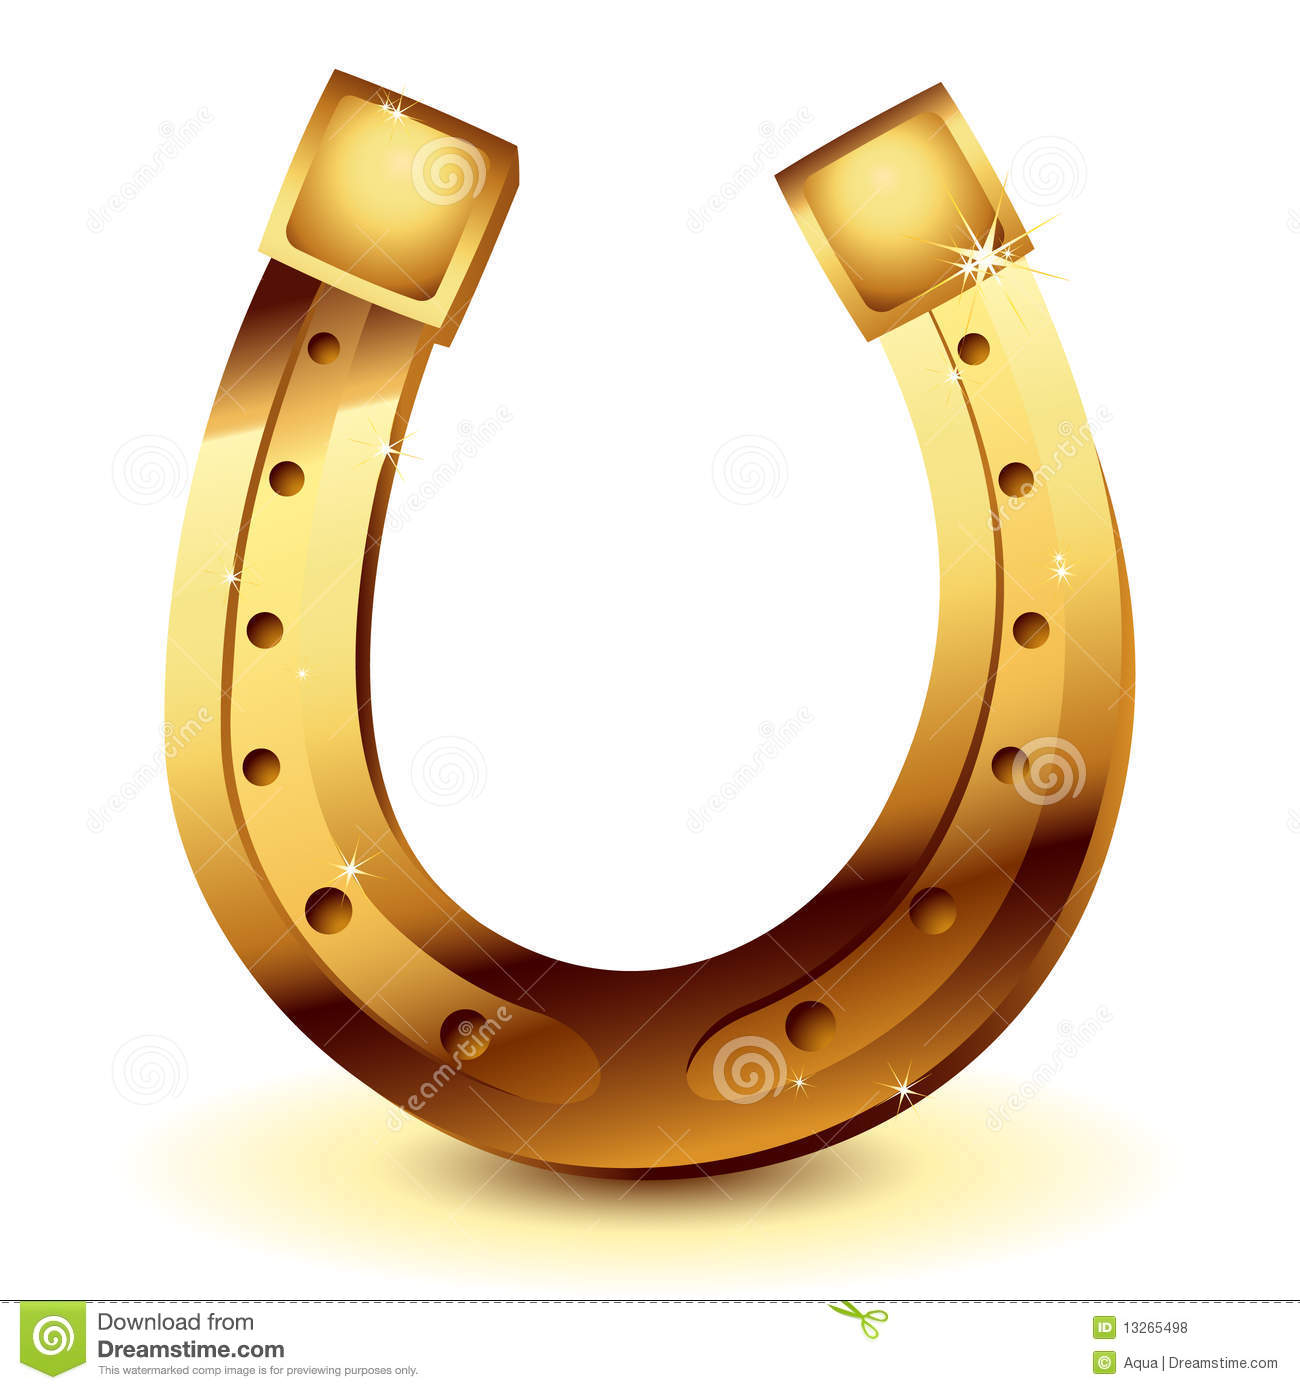 ferradura do ouro fotos de stock royalty free imagem clipart horseshoe and rope clipart horseshoe style meeting table